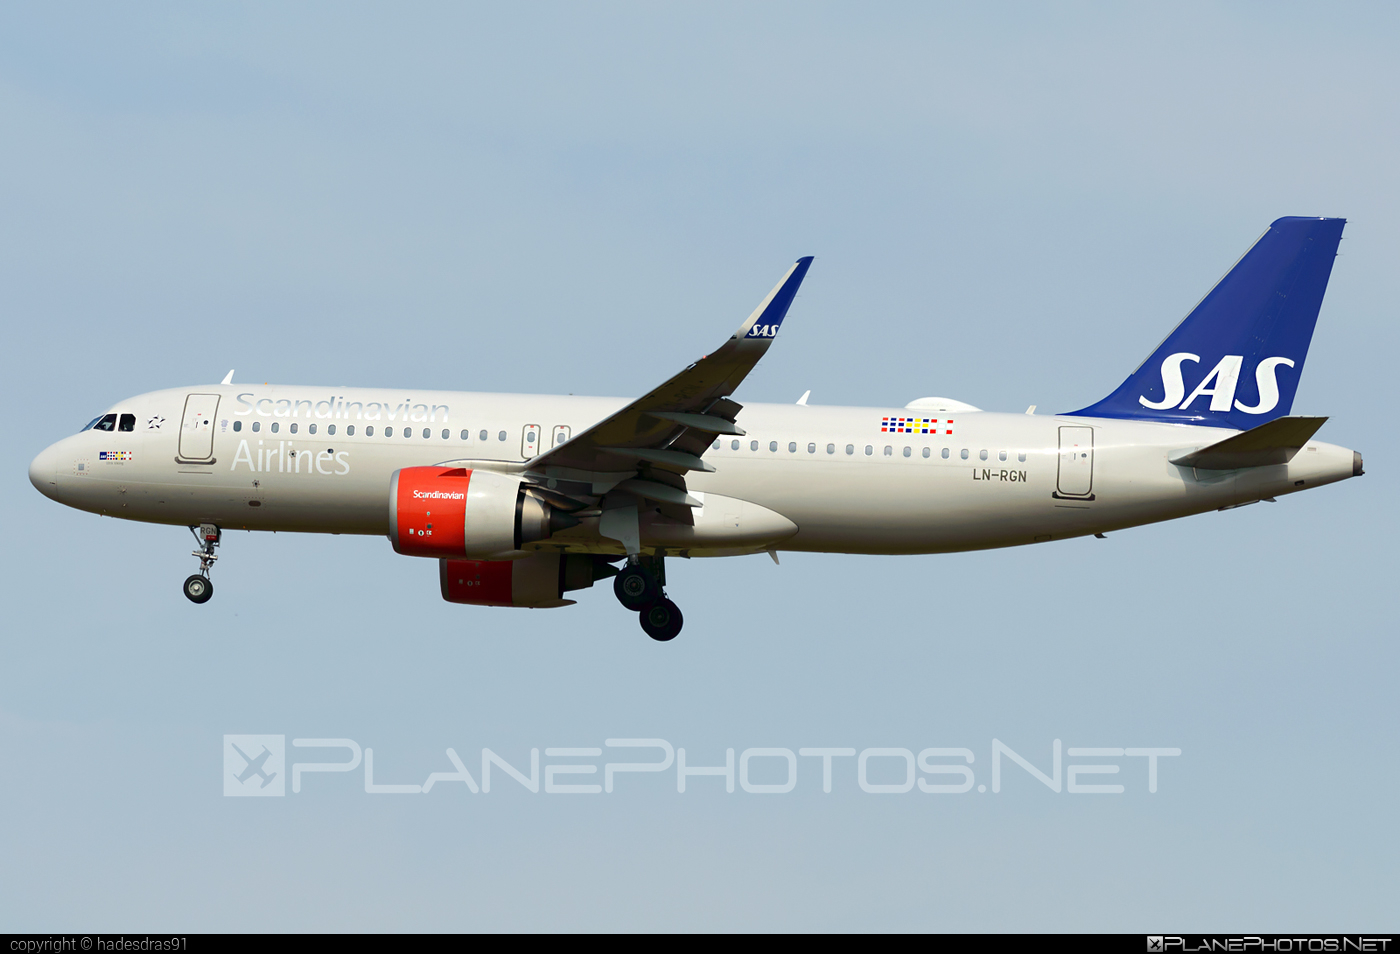 Airbus A320-251N - LN-RGN operated by Scandinavian Airlines (SAS) #a320 #a320family #a320neo #airbus #airbus320 #sas #sasairlines #scandinavianairlines